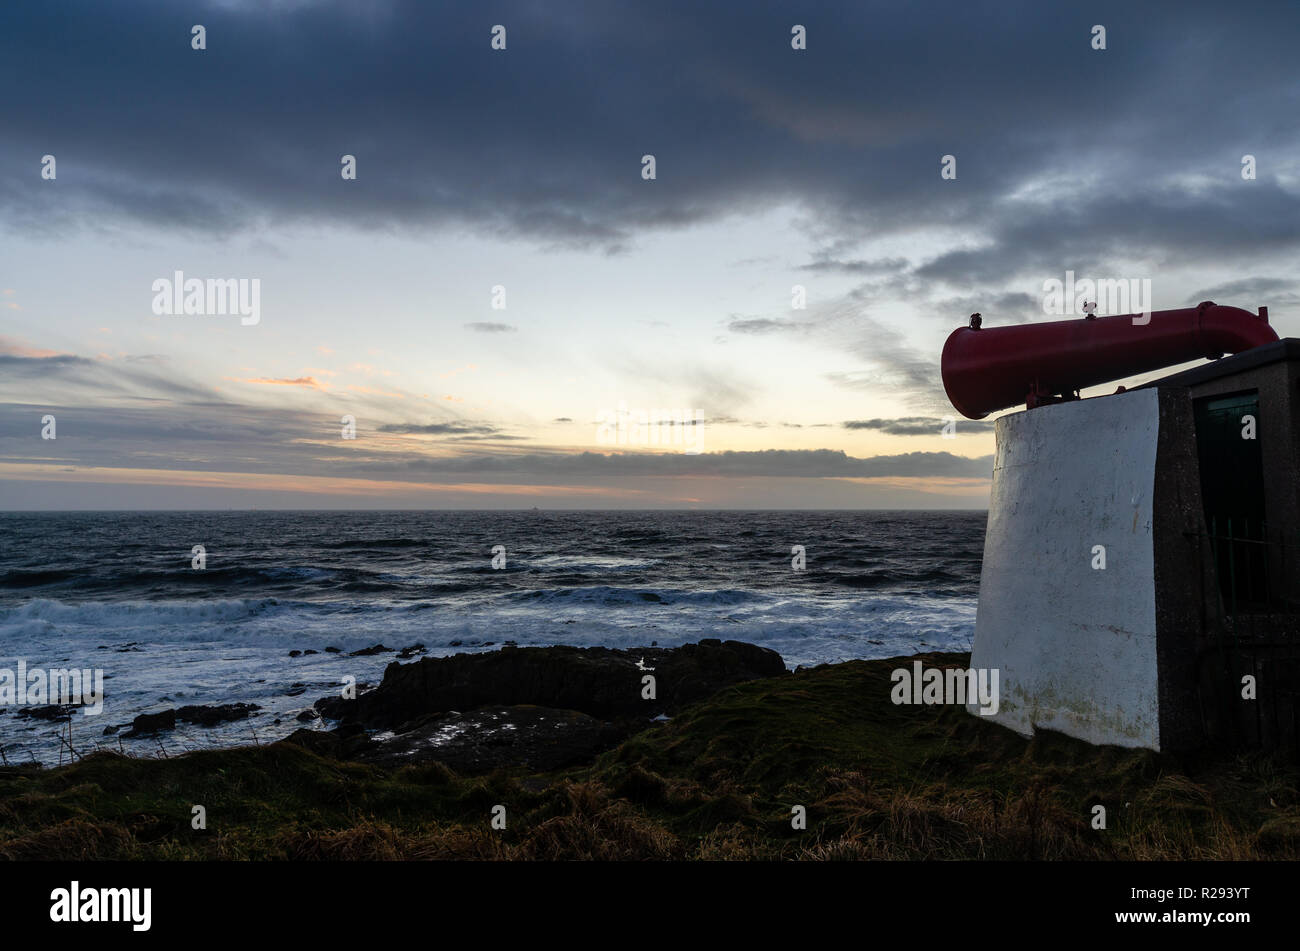 Fog horn on the coast outside Aberdeen in Scotland. - Stock Image